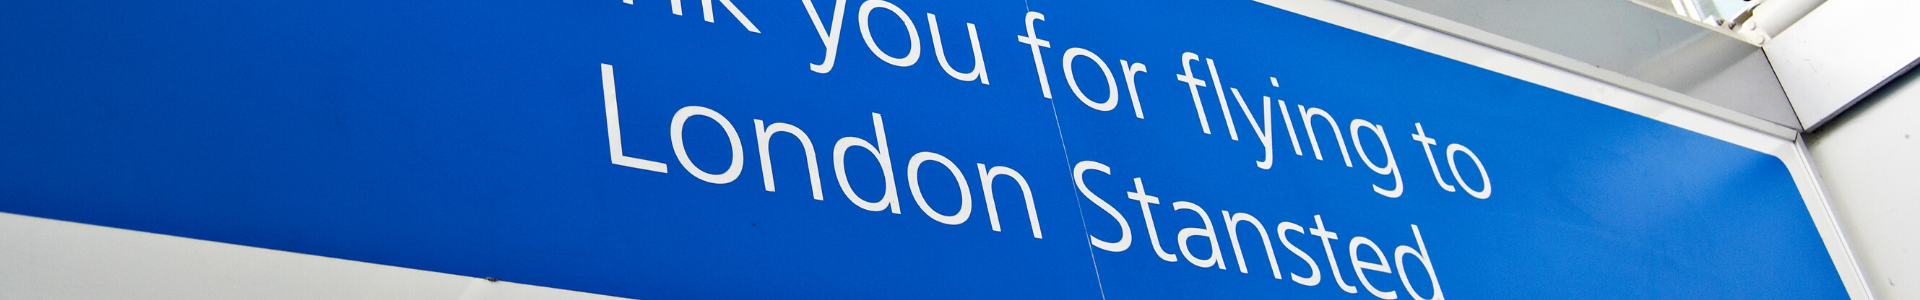 stansted airport banner.png